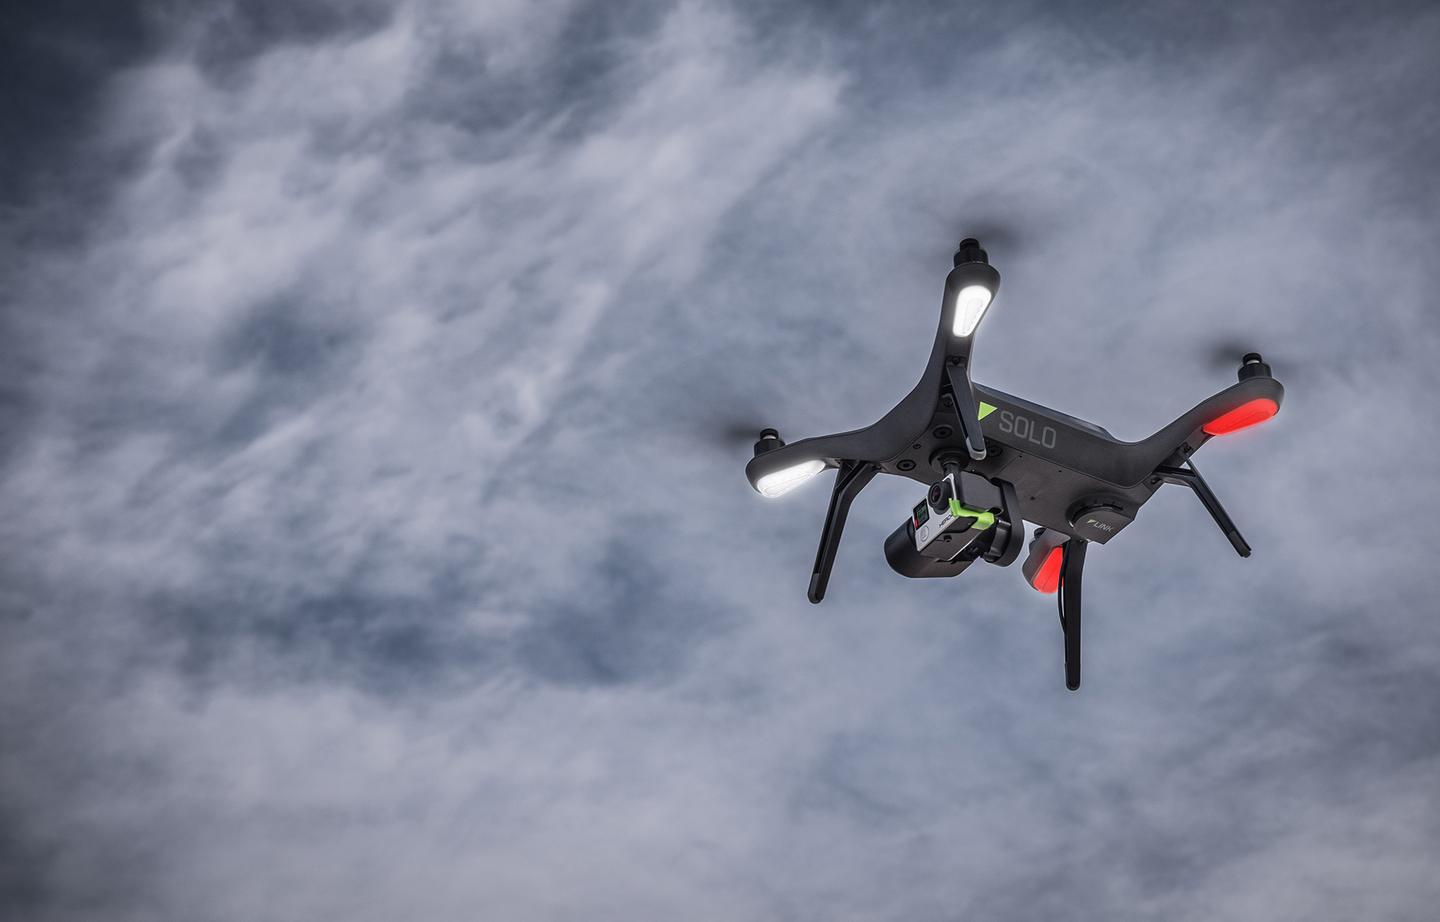 The 3D Robotics Solo quadcopter is designed to give results right out of the box